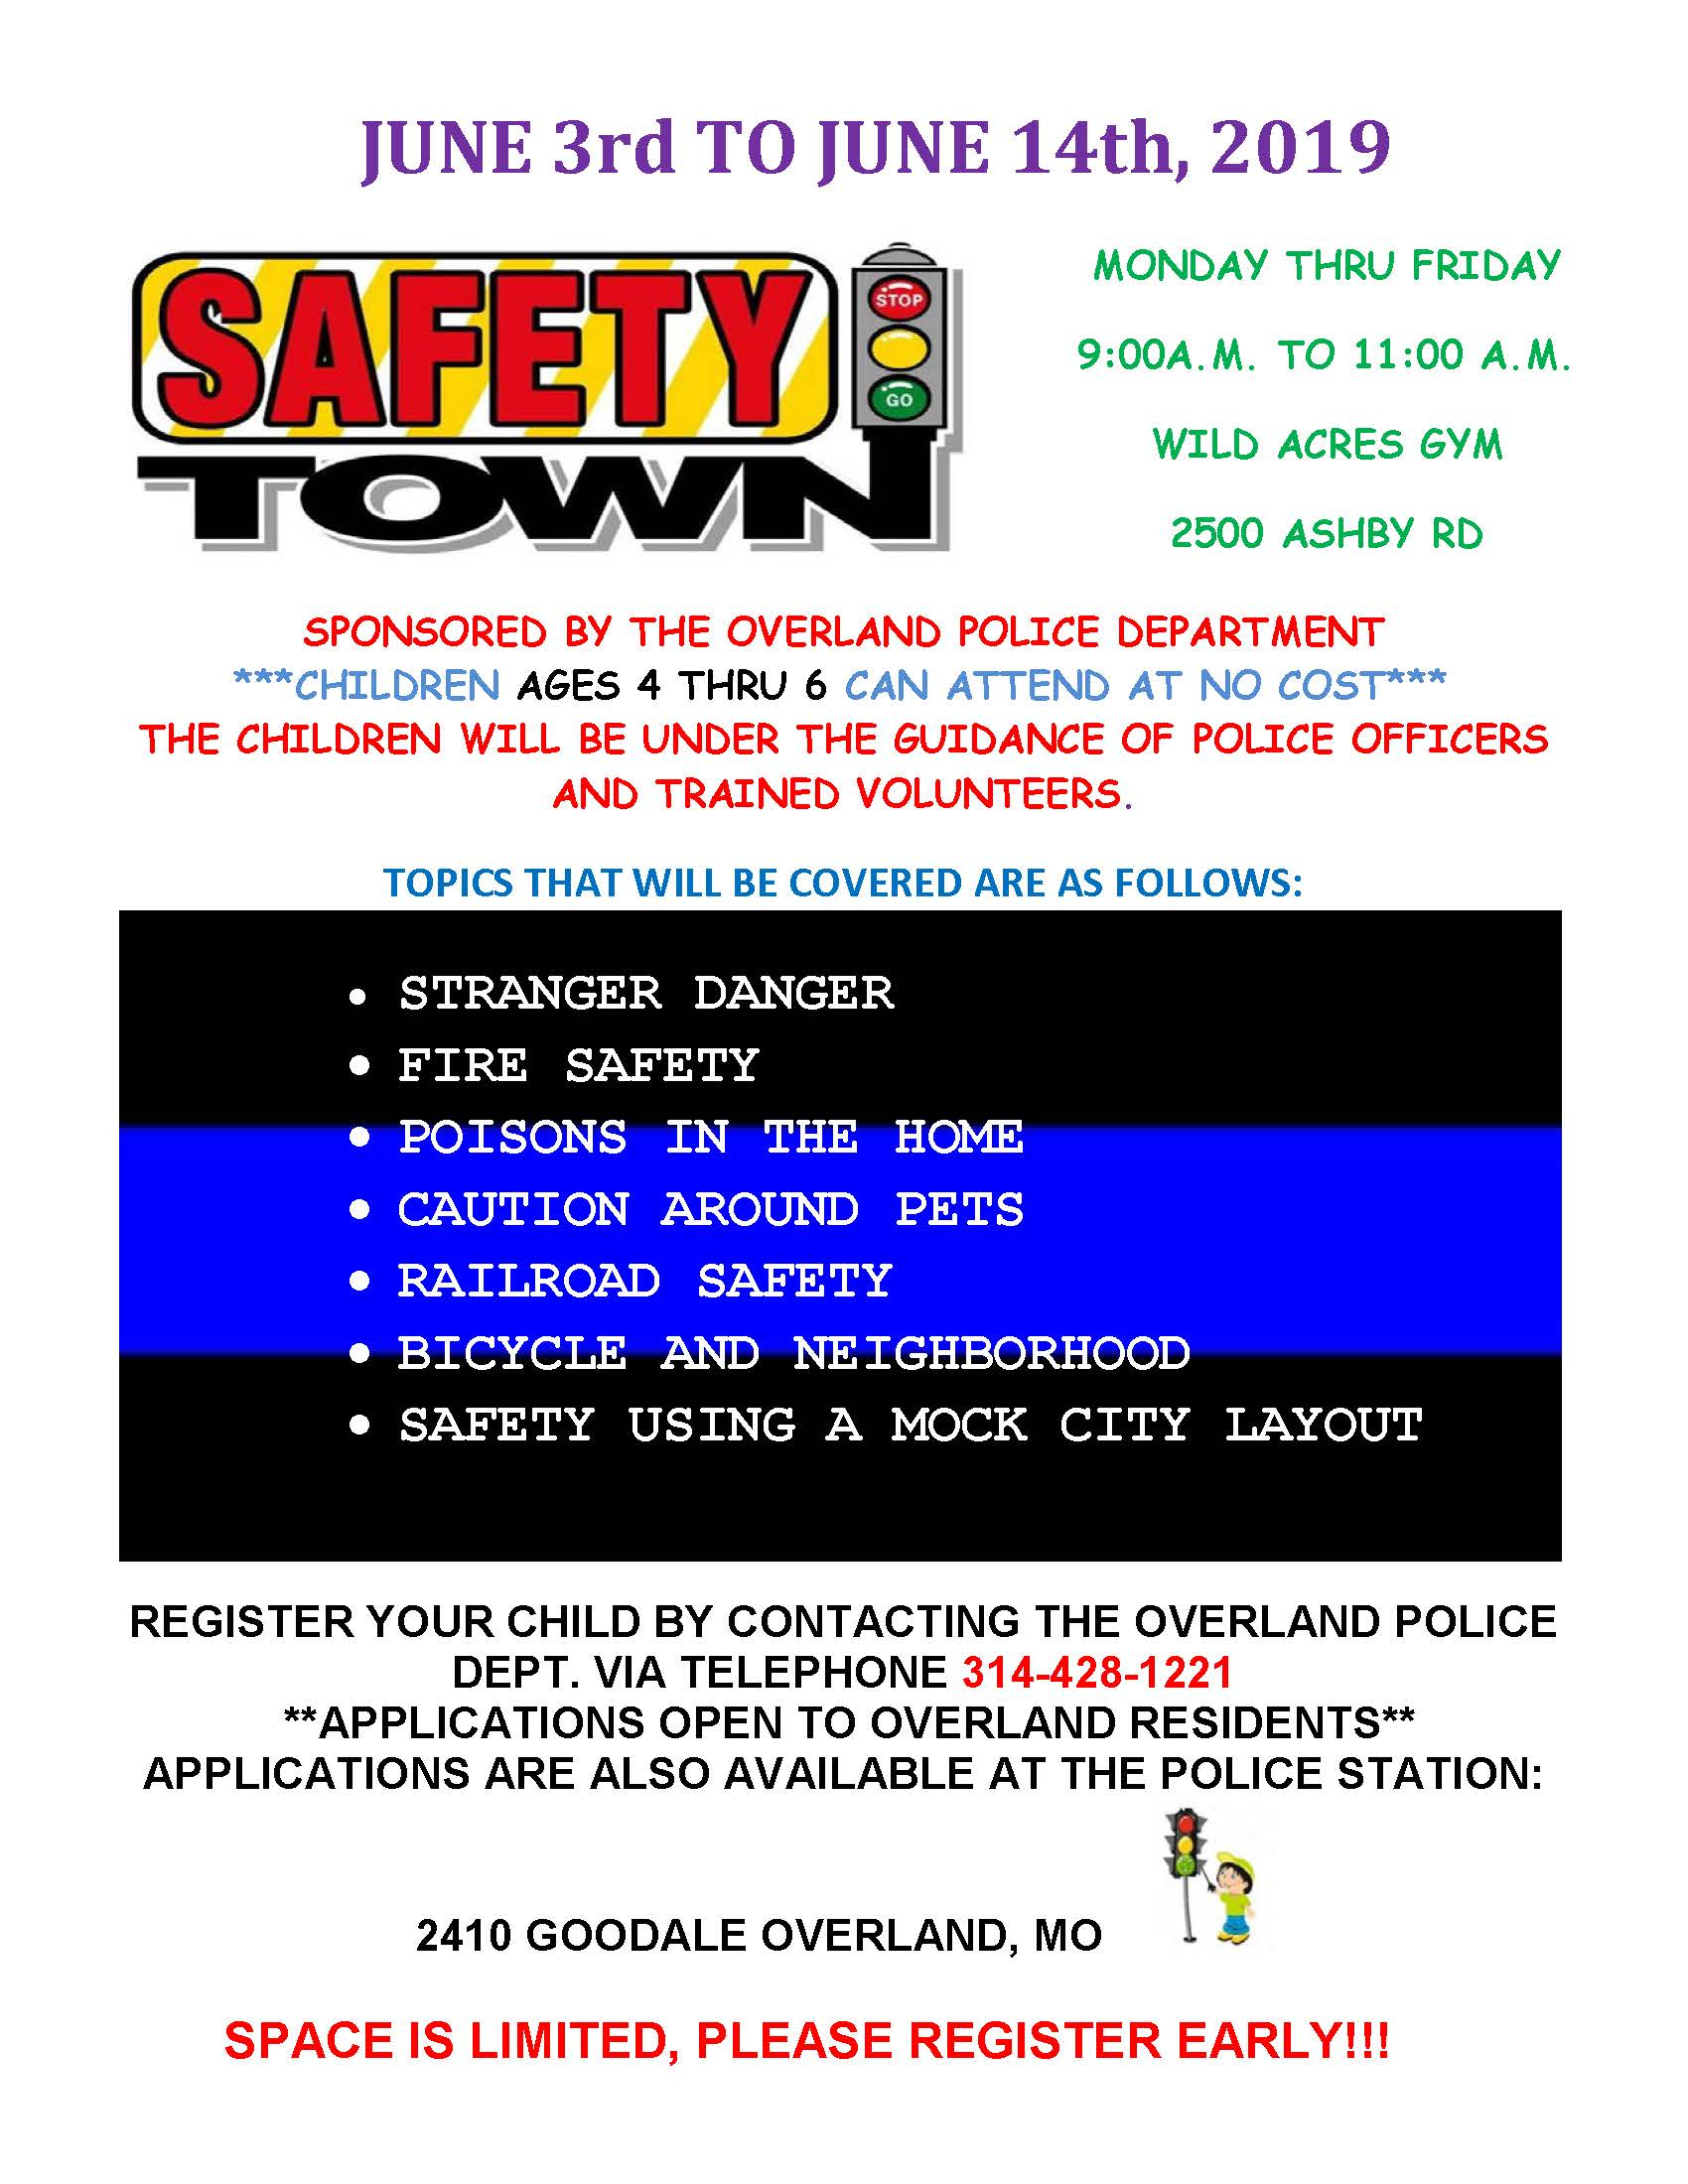 SAFETY TOWN 19FLYER (1)